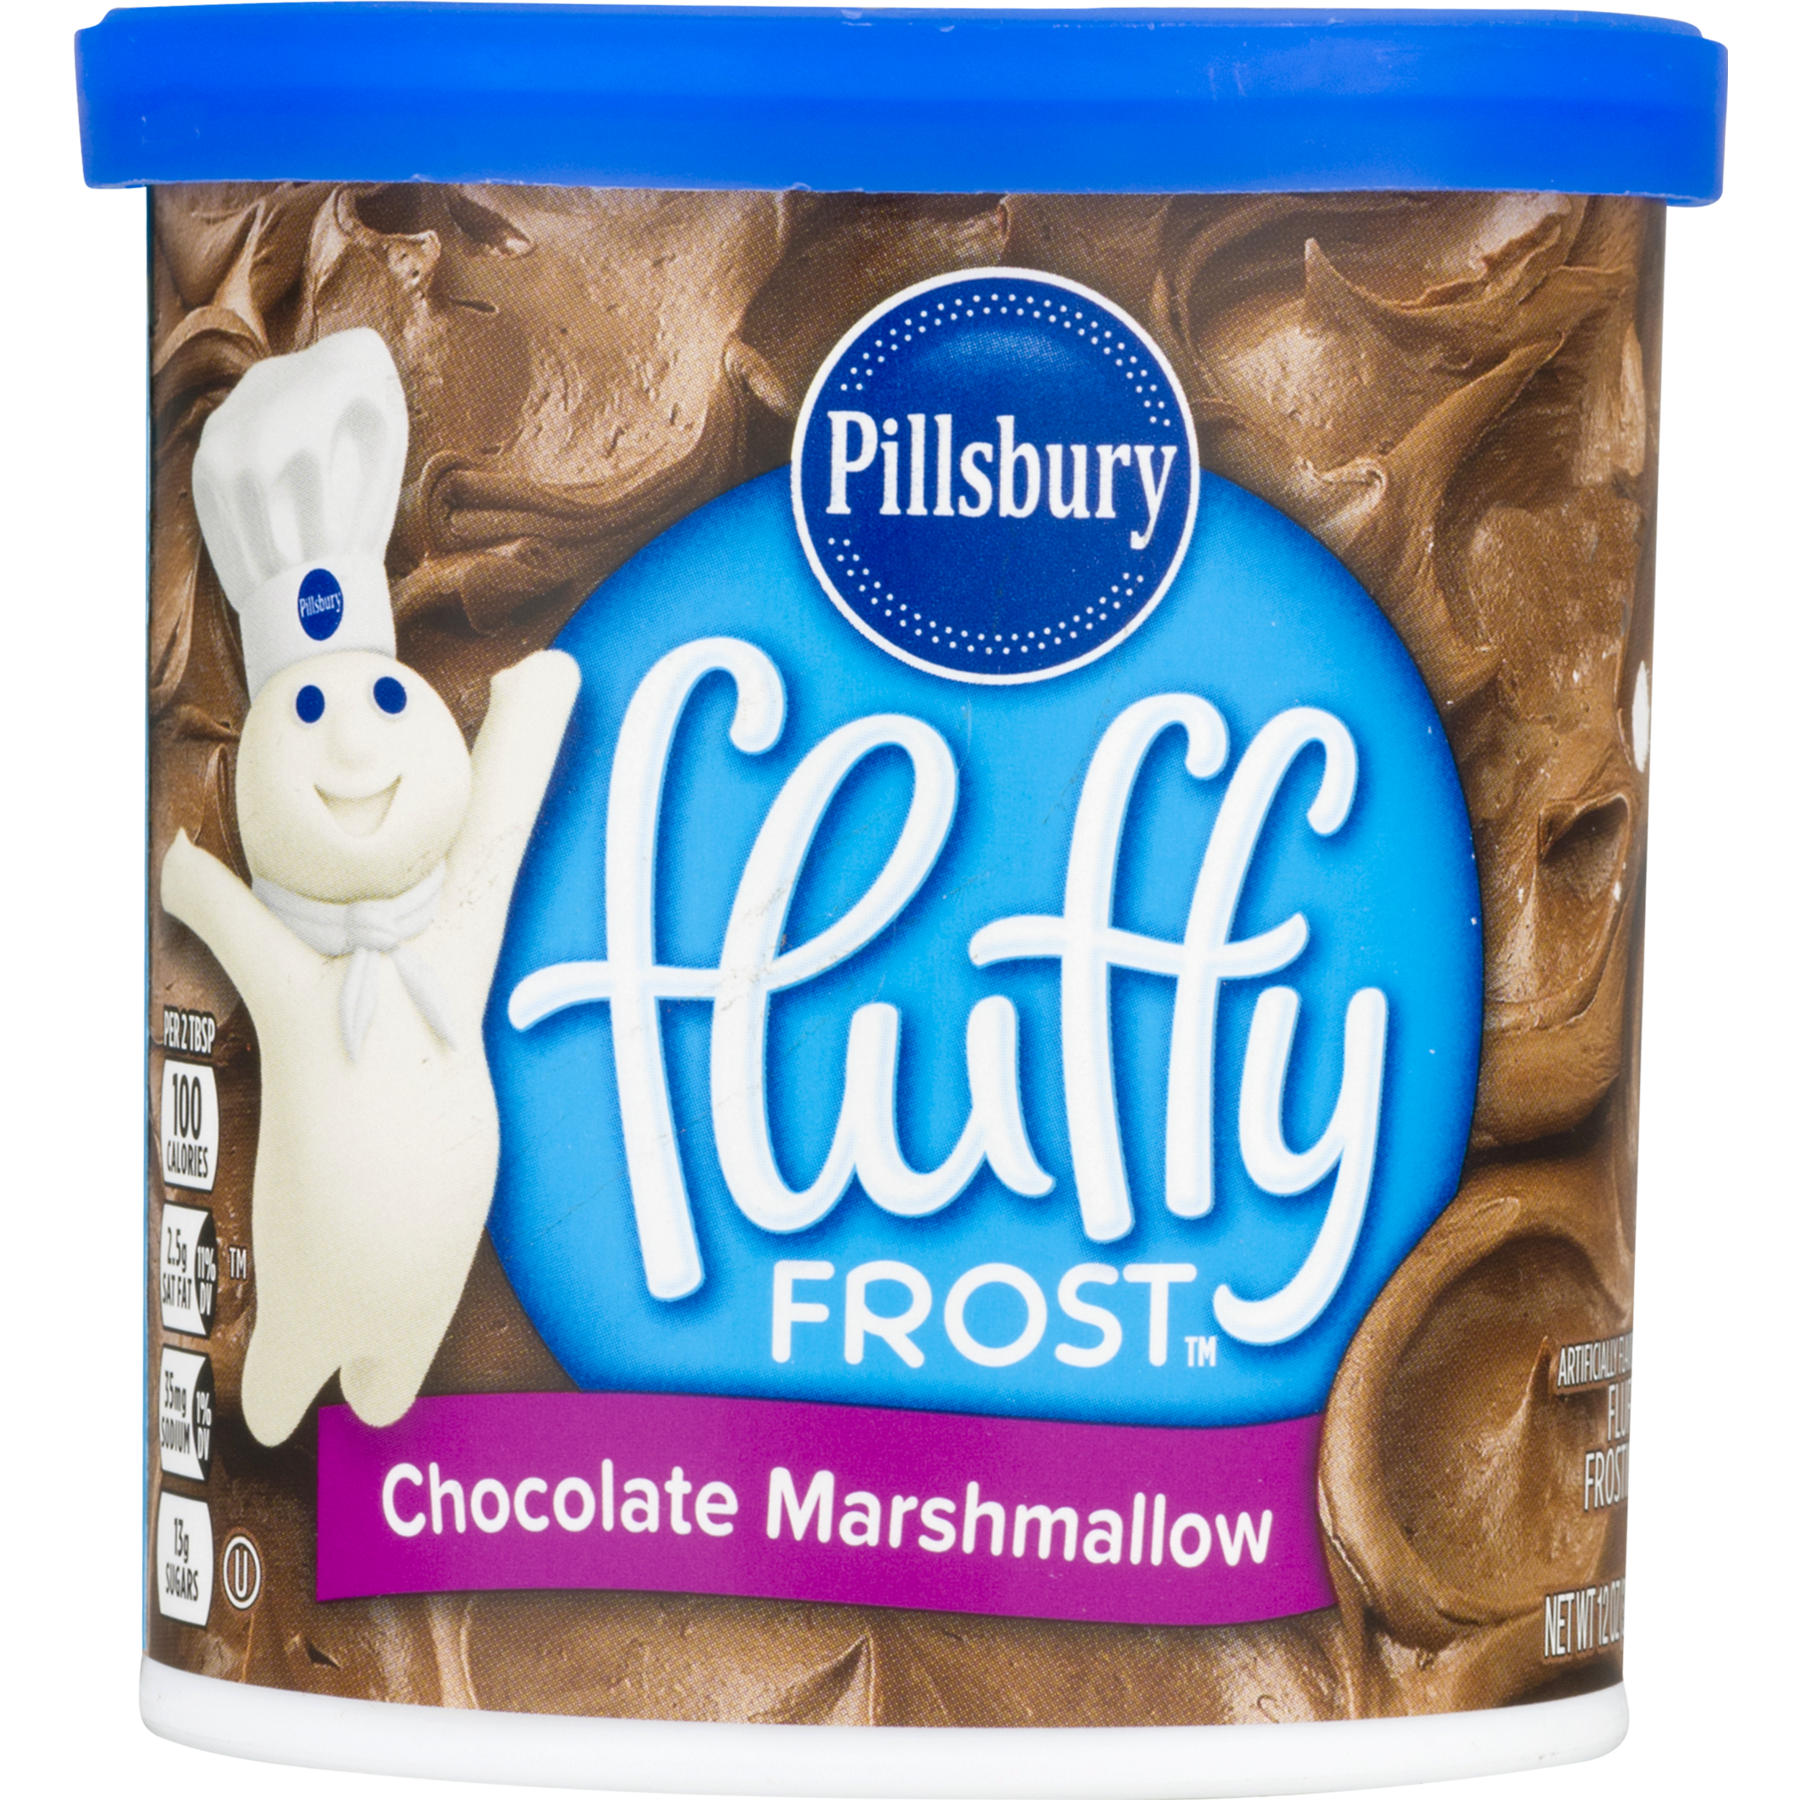 Frost transparent chocolate. Pillsbury marshmallow fluffy frosting